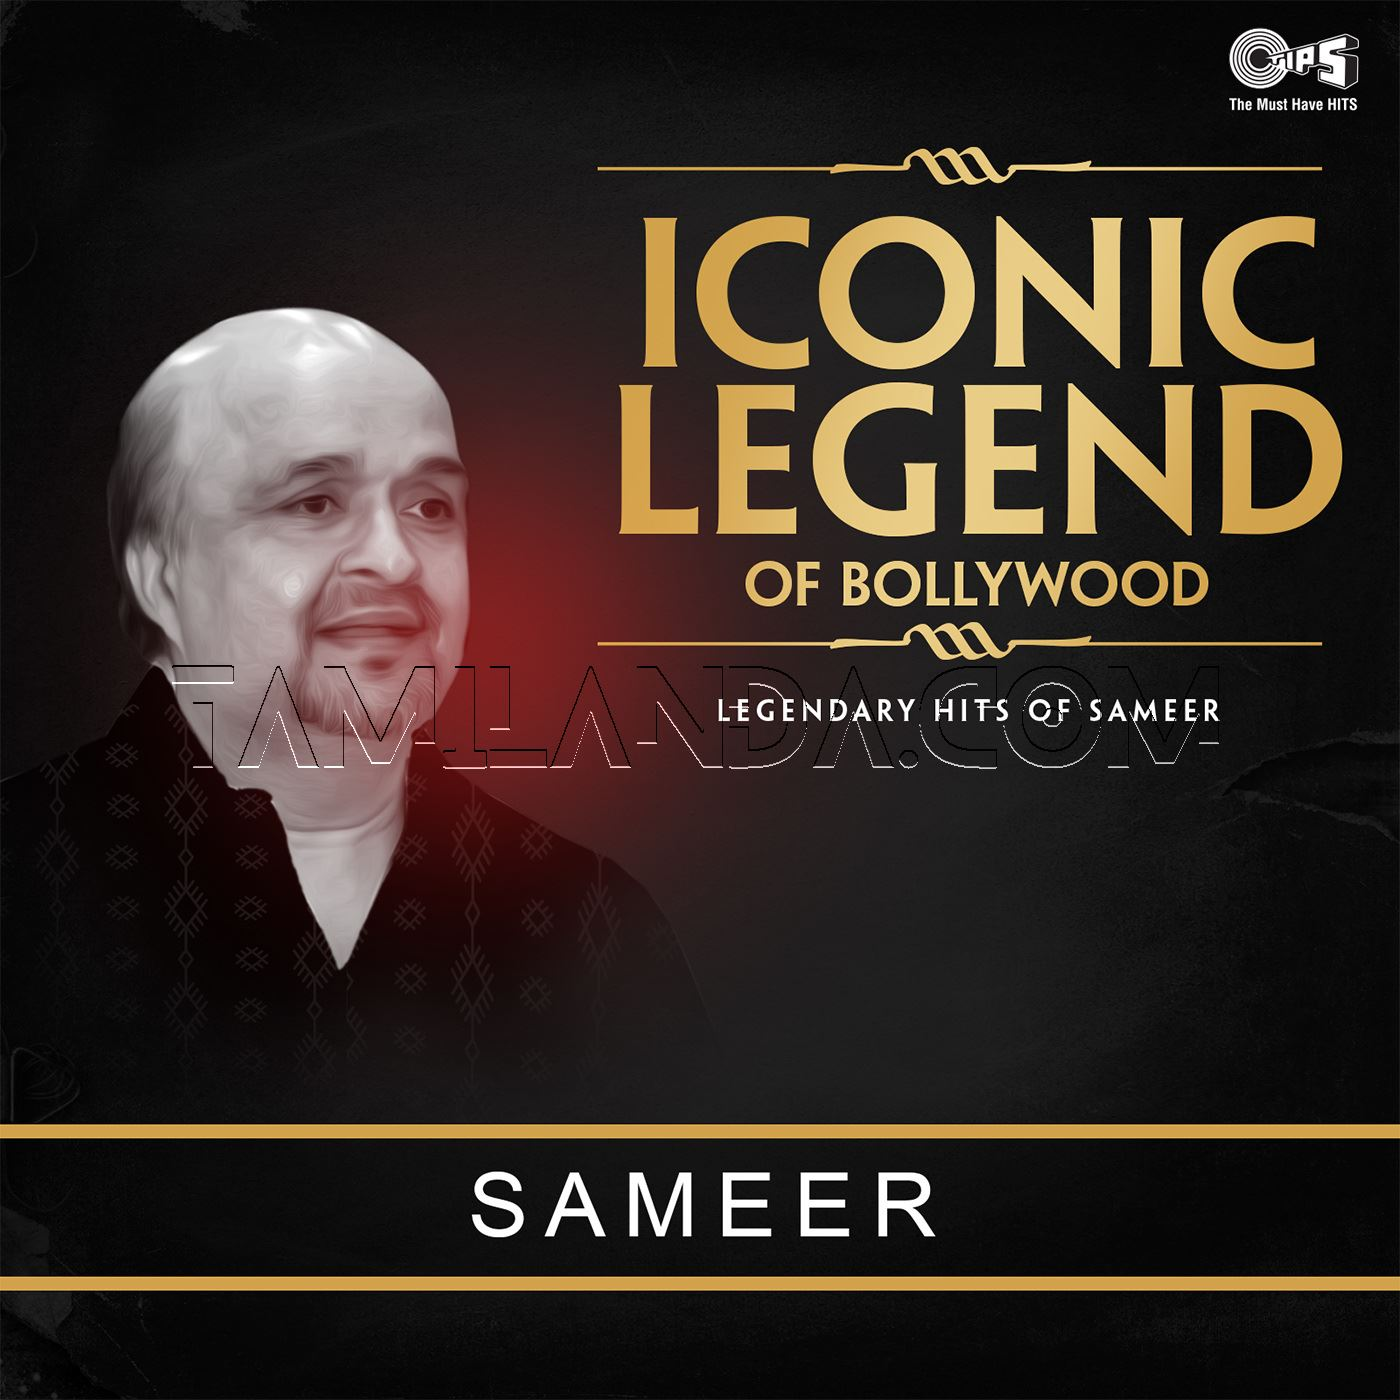 Iconic Legend of Bollywood – Sameer (2018)